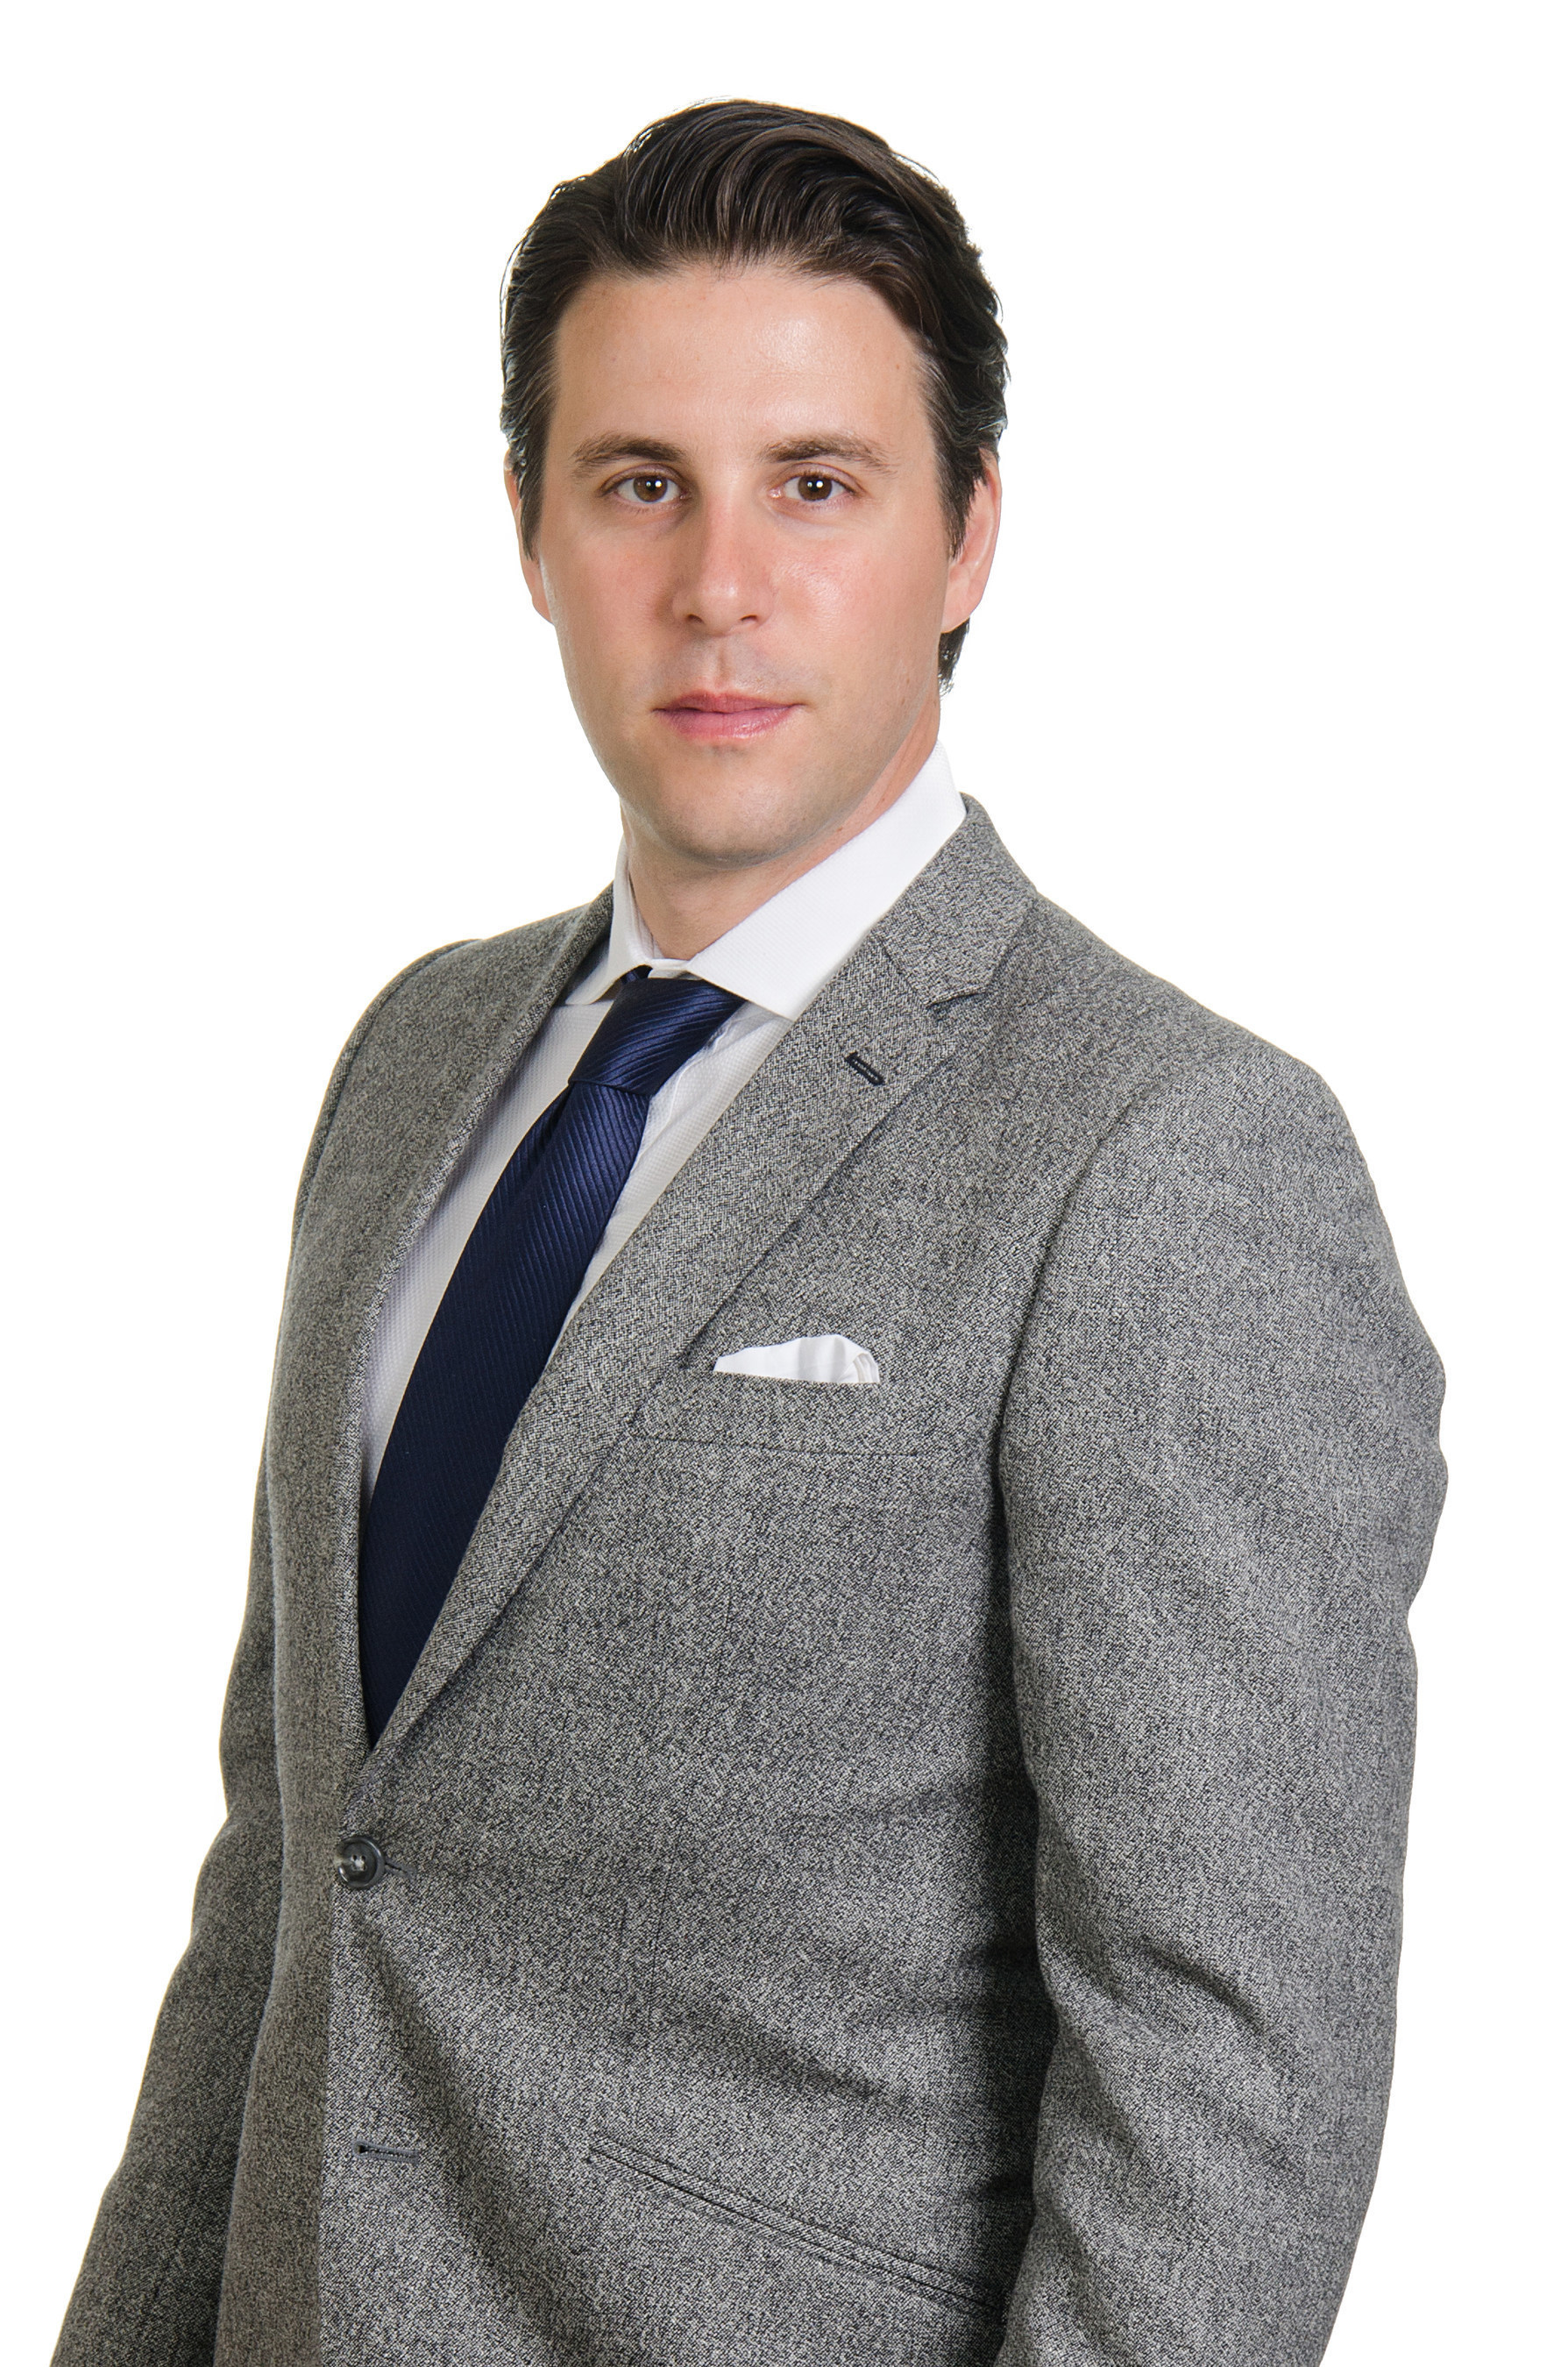 John D'Agostino joins DMS as Managing Director with responsibility for the firm's North and South American operations.